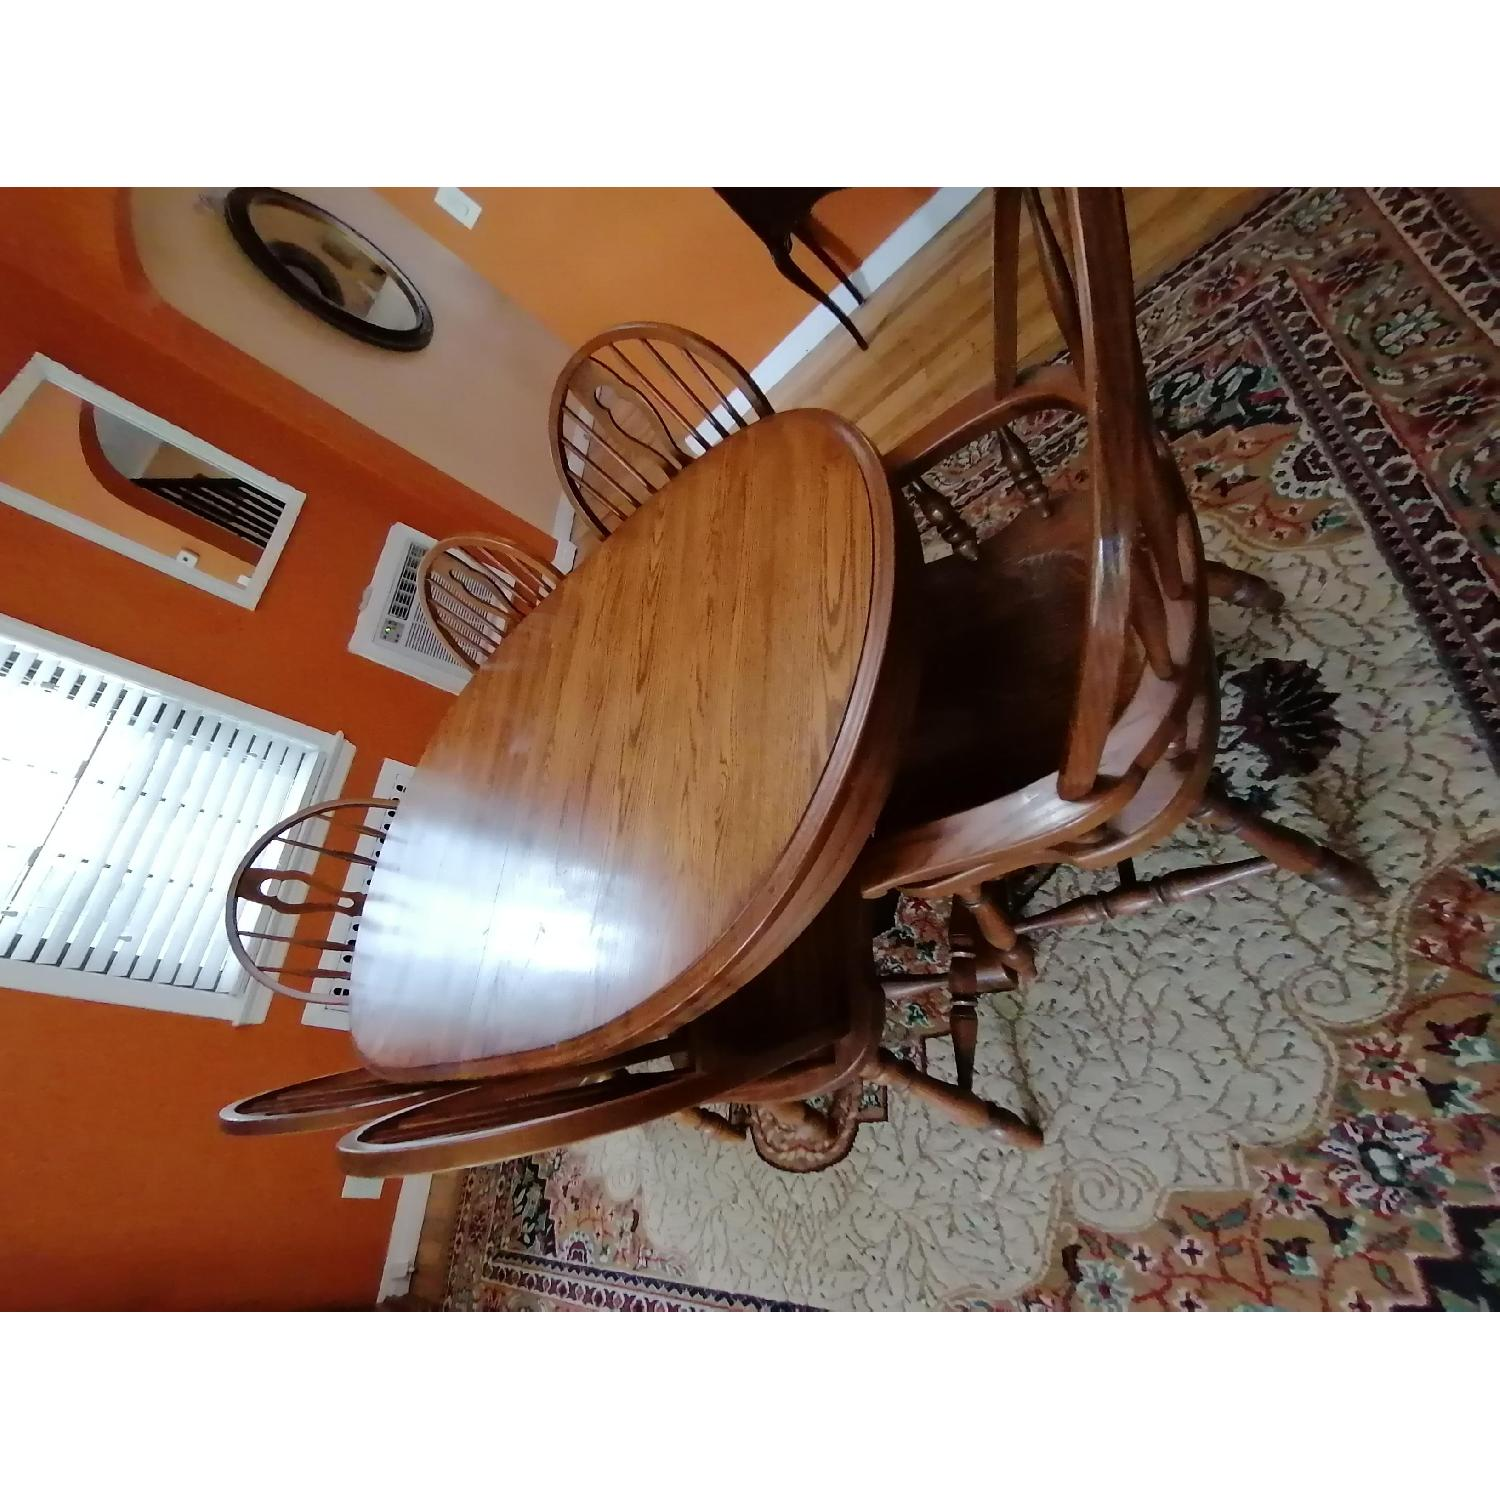 Raymour & Flanigan Extendable Dining Table w/ 6 Chairs - image-2